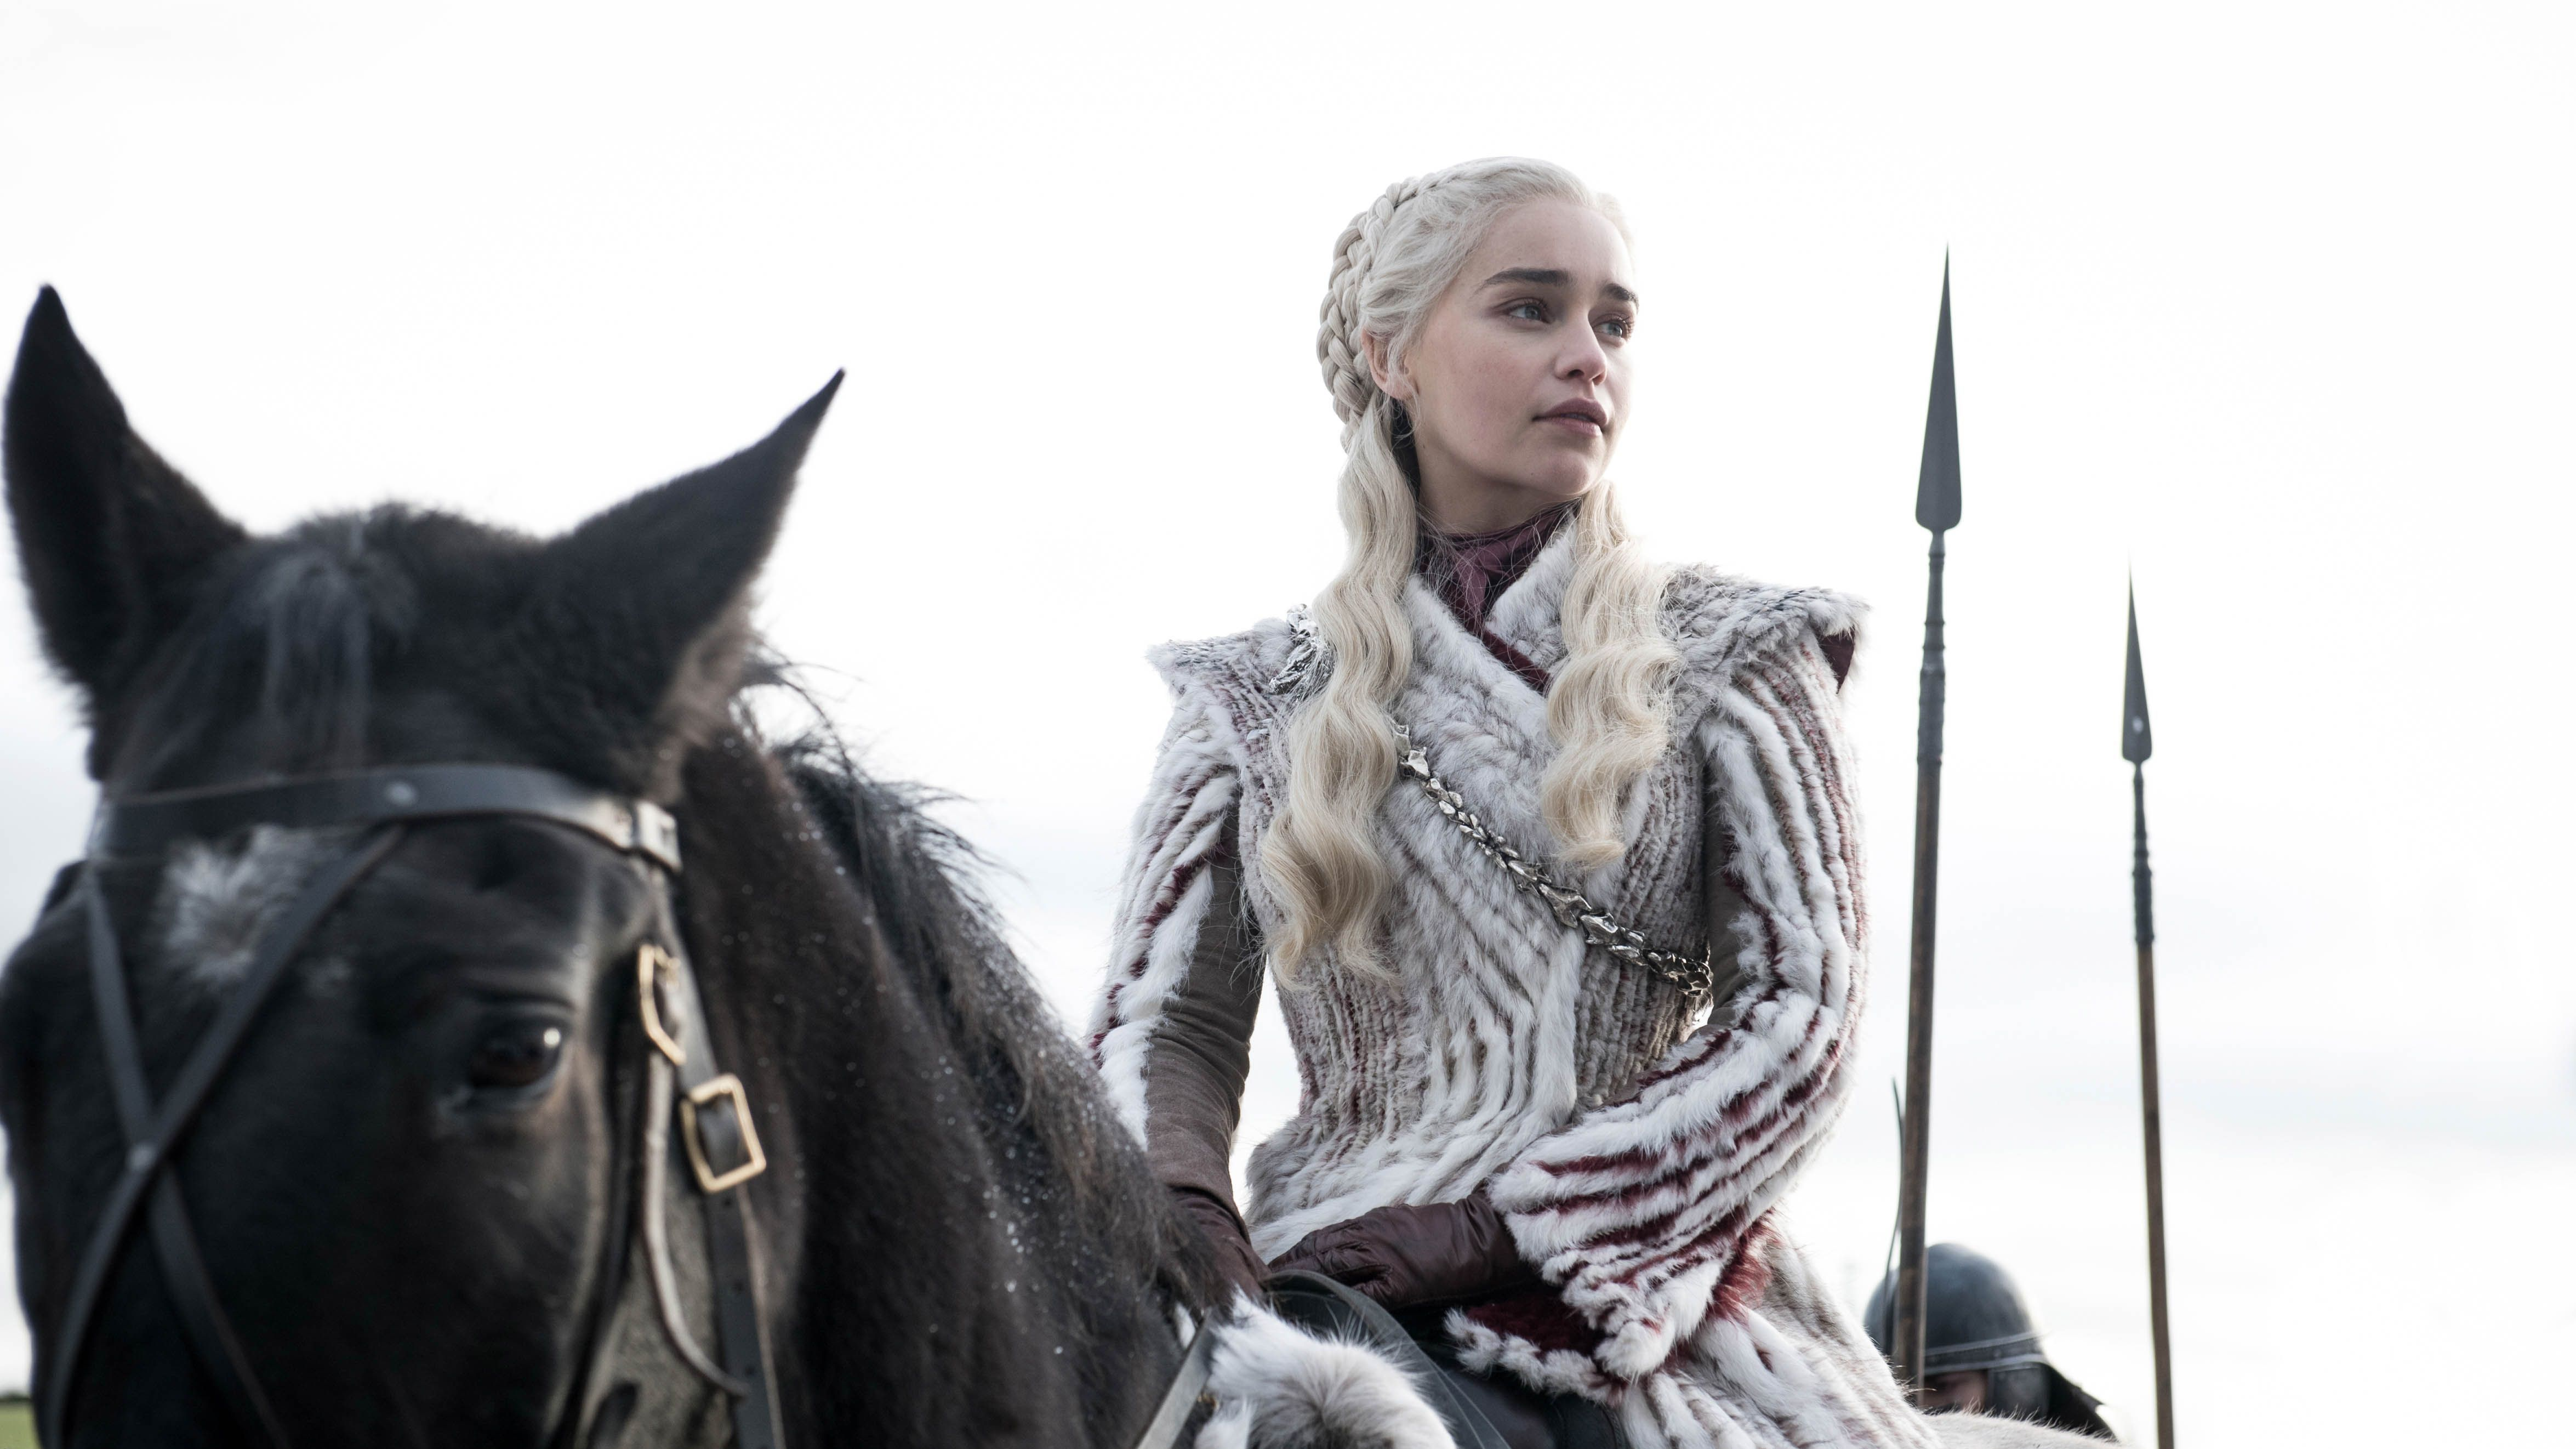 Game of Thrones gave HBO an Emmys boost over Netflix